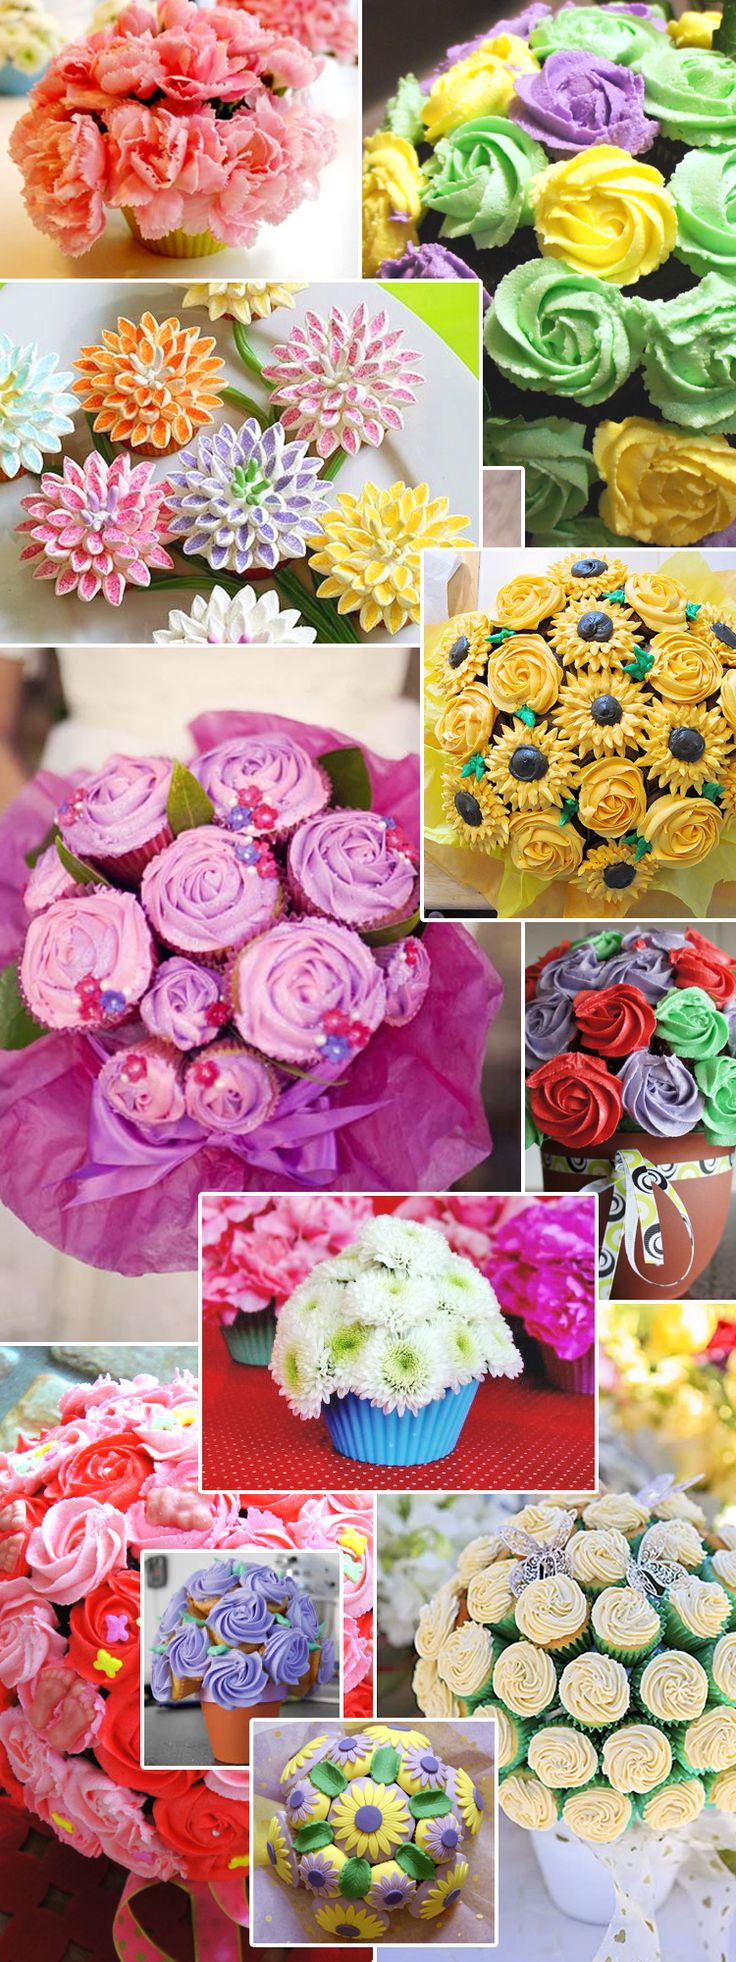 Best 25 cupcake flower bouquets ideas on pinterest cupcake cupcake bouquets what a lovely idea for gifts i could start a business out dhlflorist Images